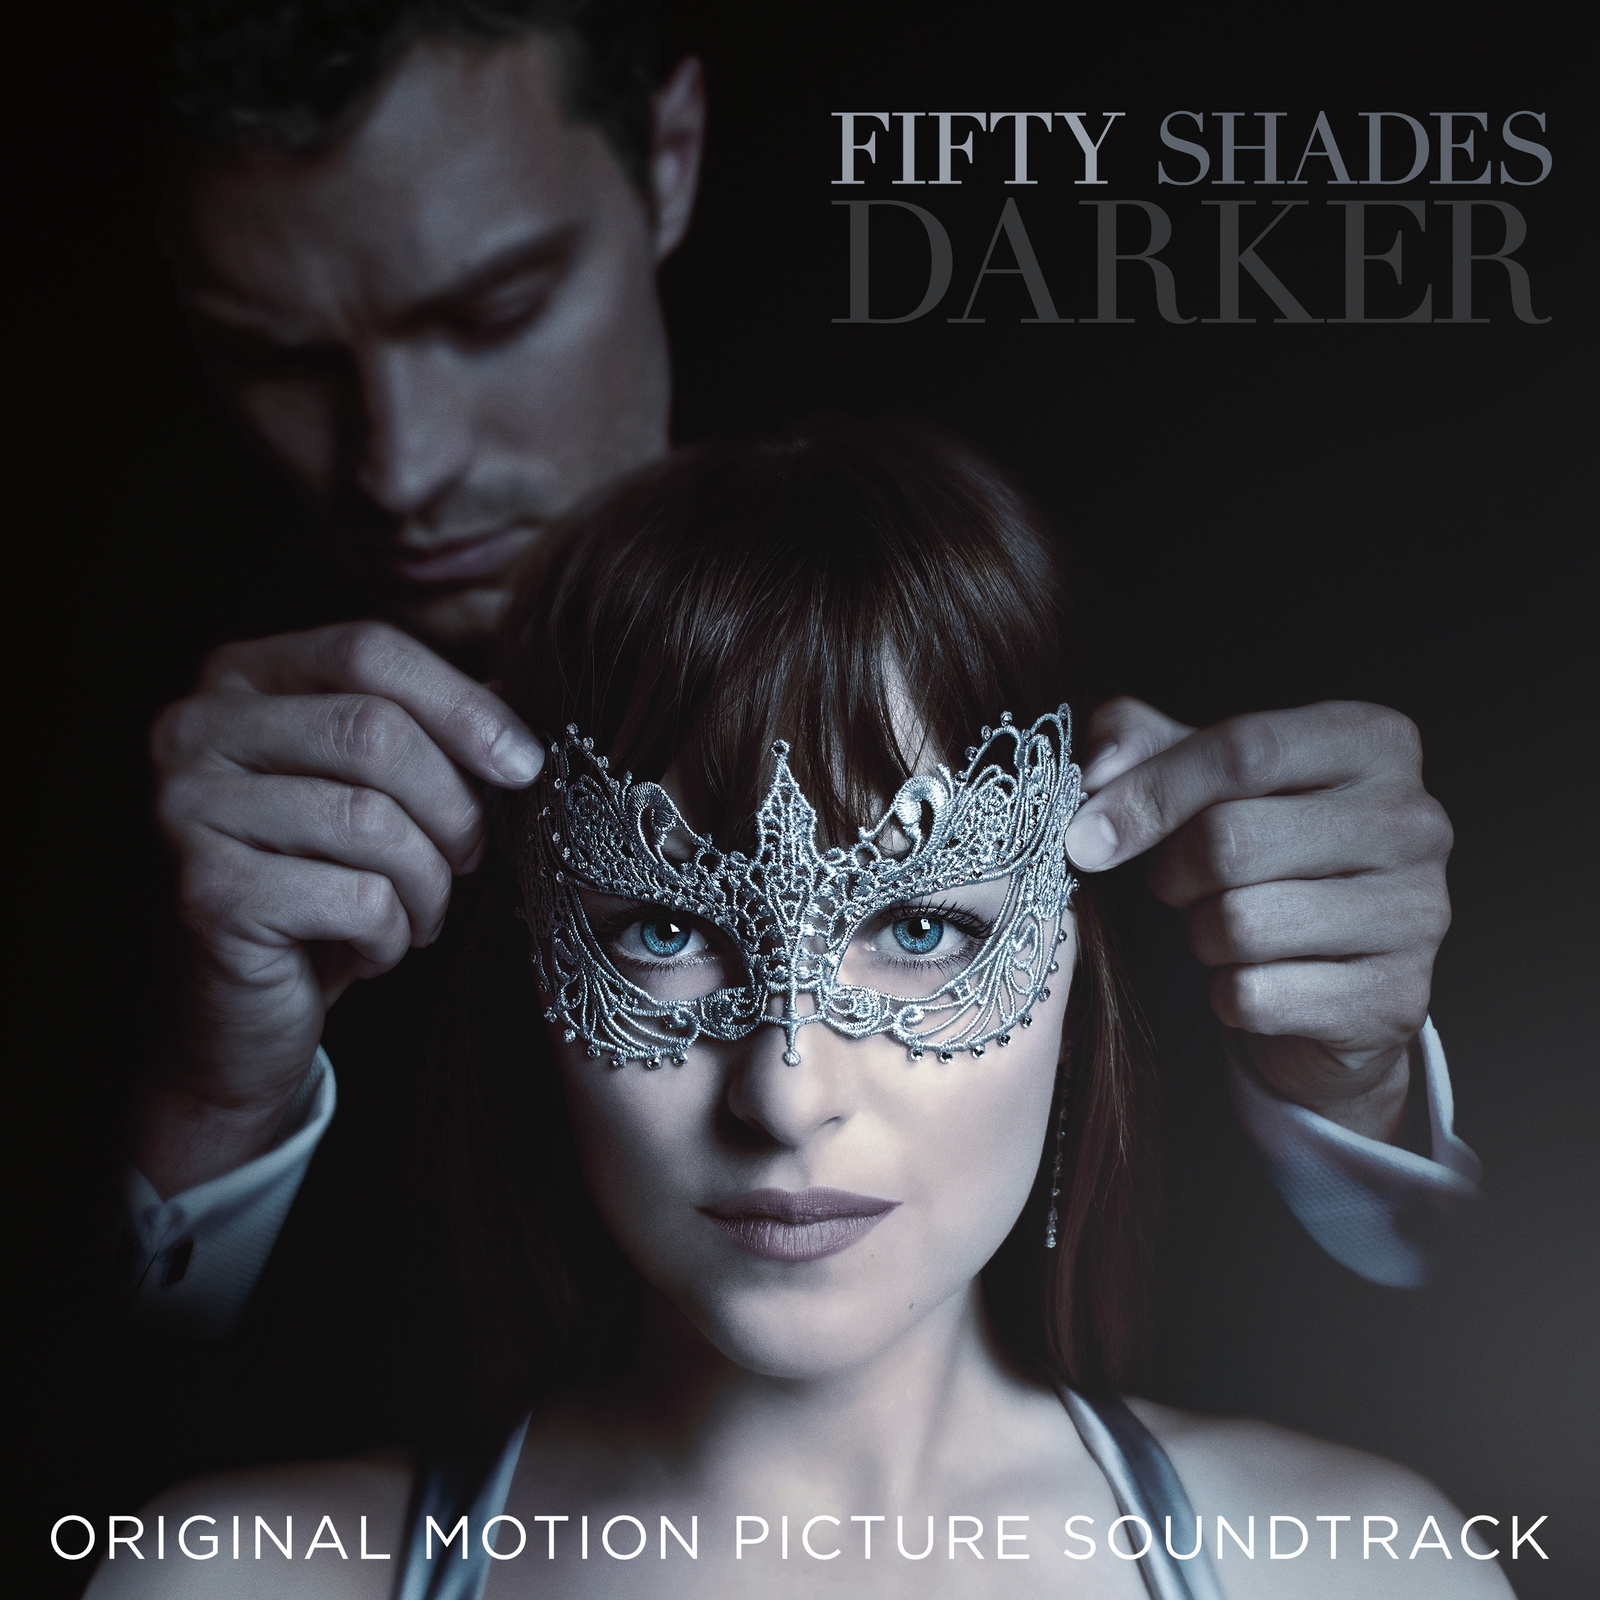 Fifty Shades Darker - Original Movie Soundtrack by Various image